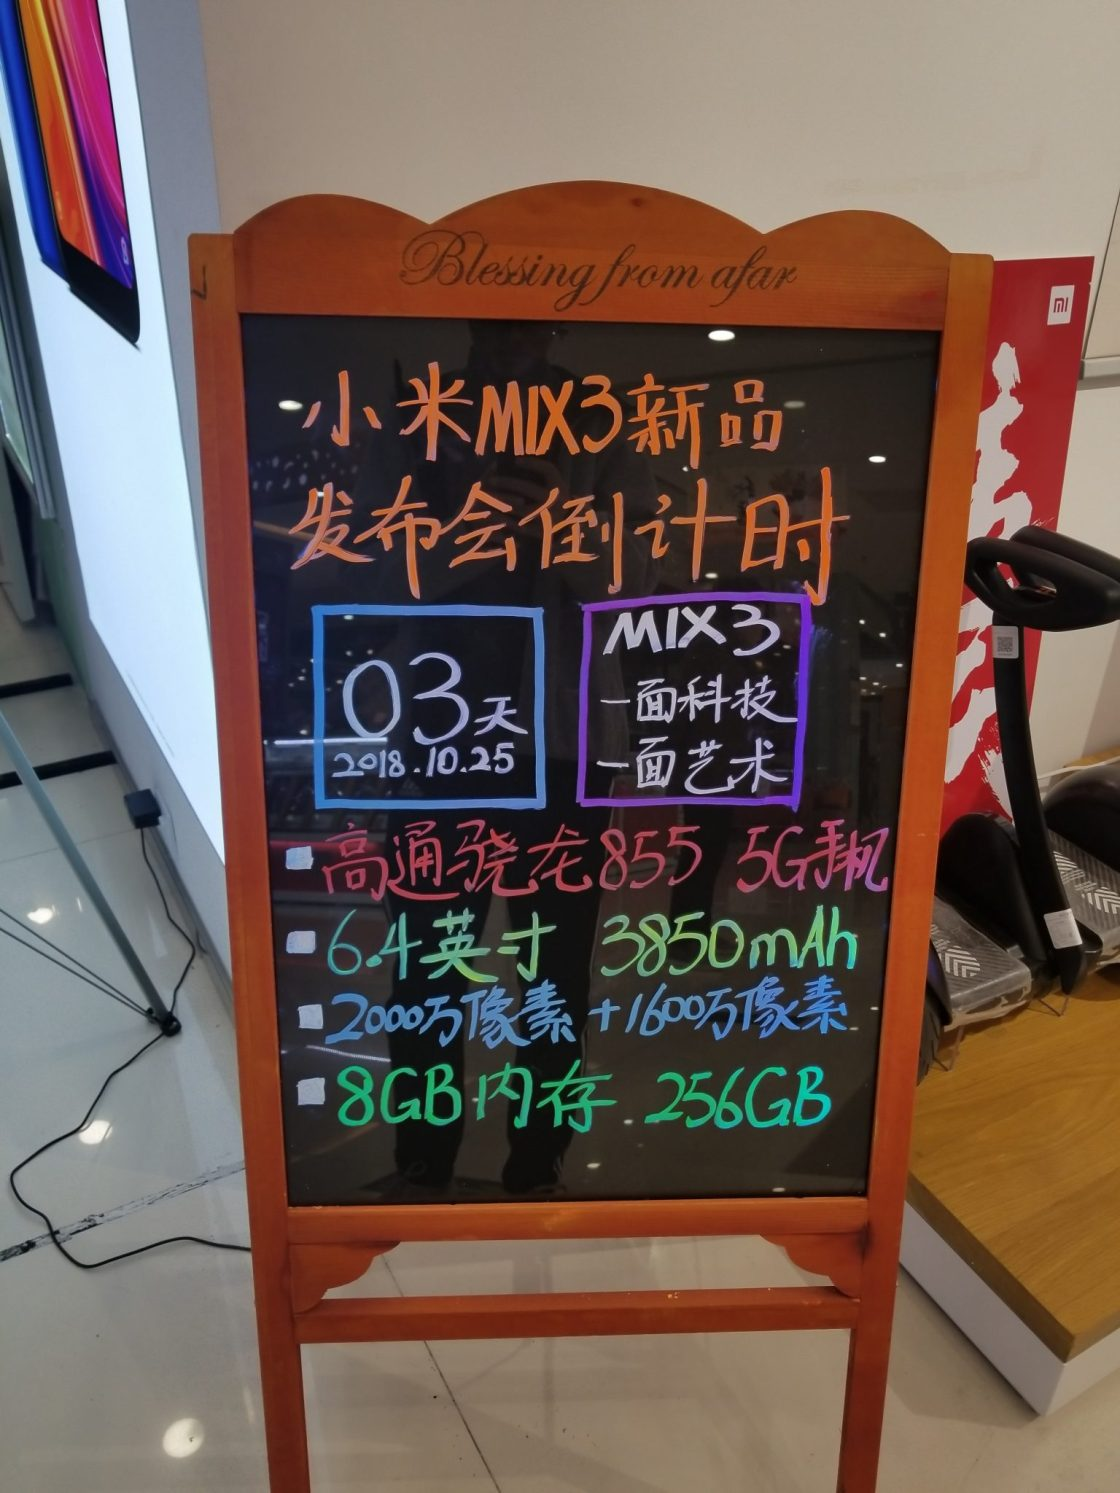 Xiaomi Mi Mix 3 might launch with Snapdragon 855 processor